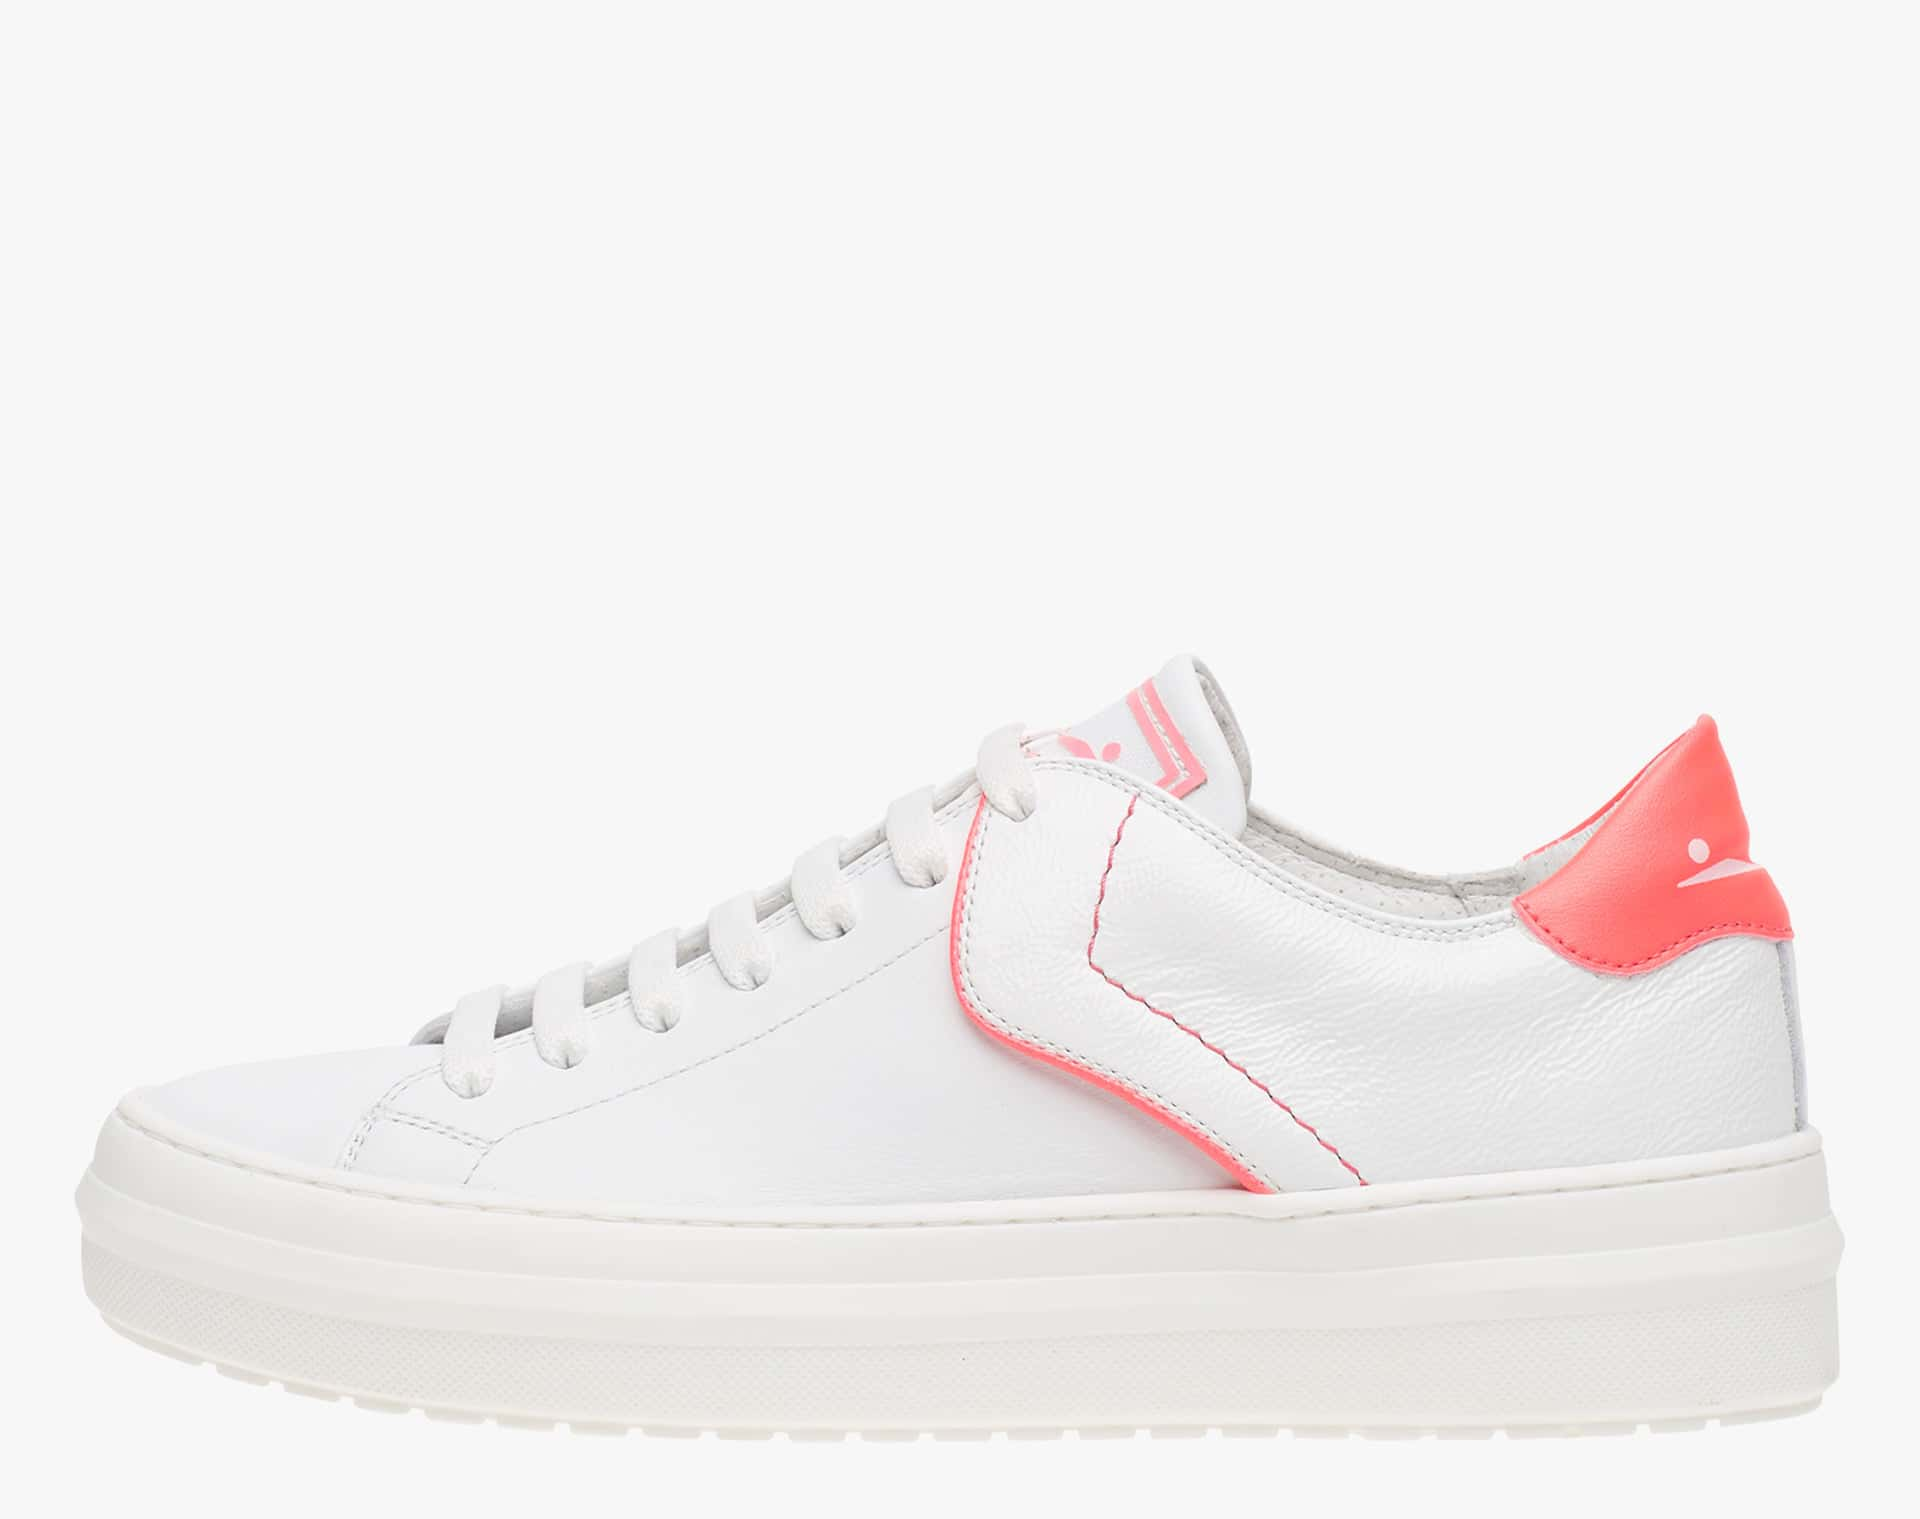 DEMI - Sneakers with fluo colour details - White/Fluo pink